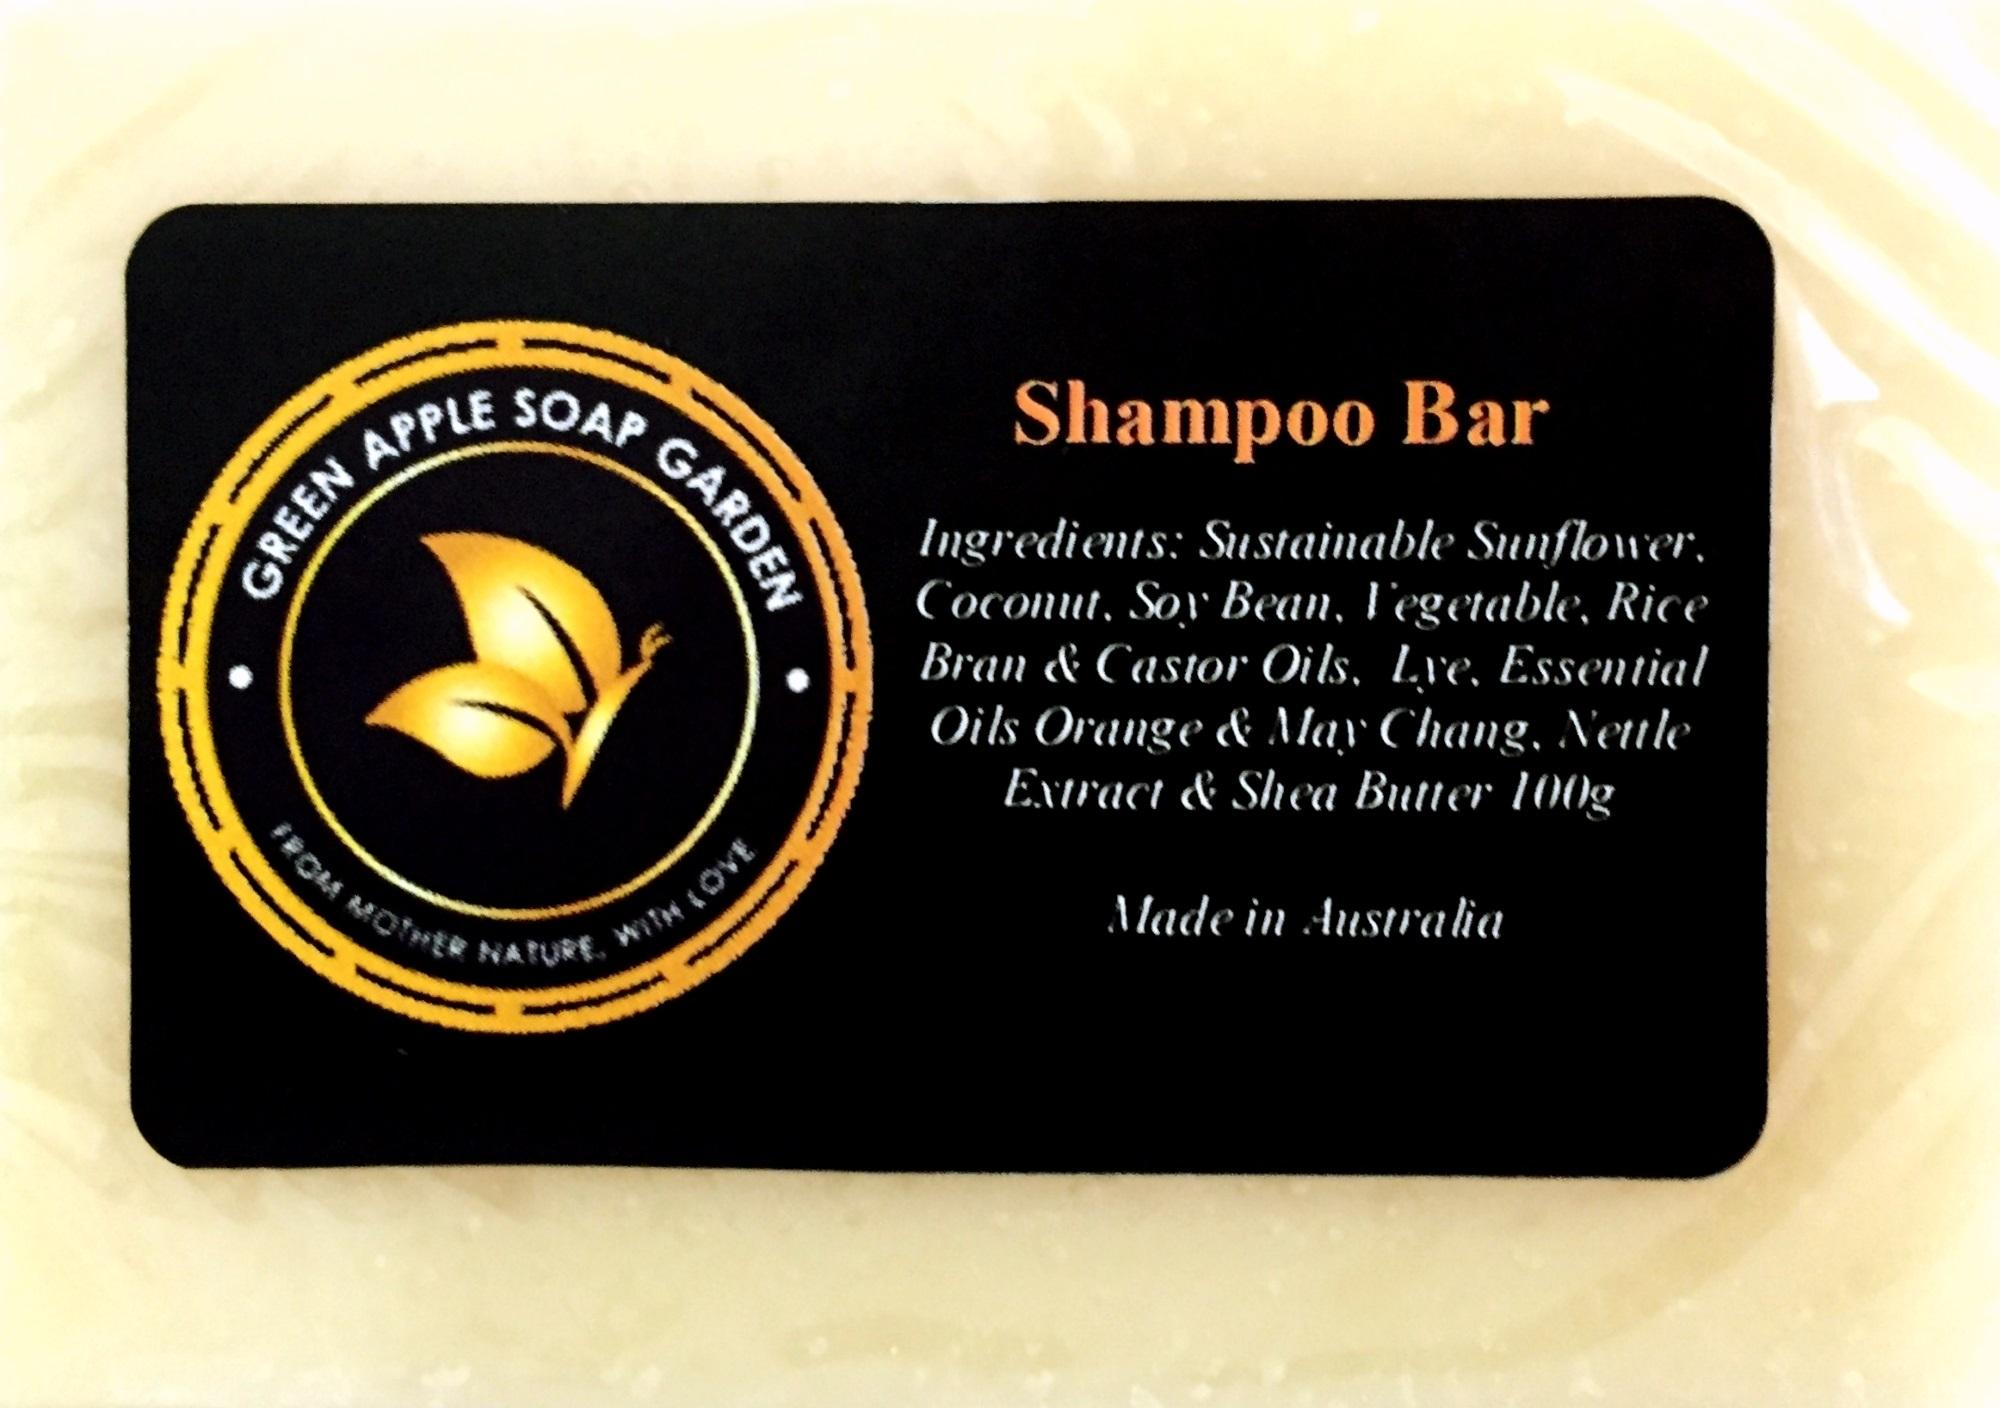 Handmade Shampoo Bar Soap Natural Ingredients, Luxurious And Refreshing. Made In Australia By Blue Sand In Jungle.